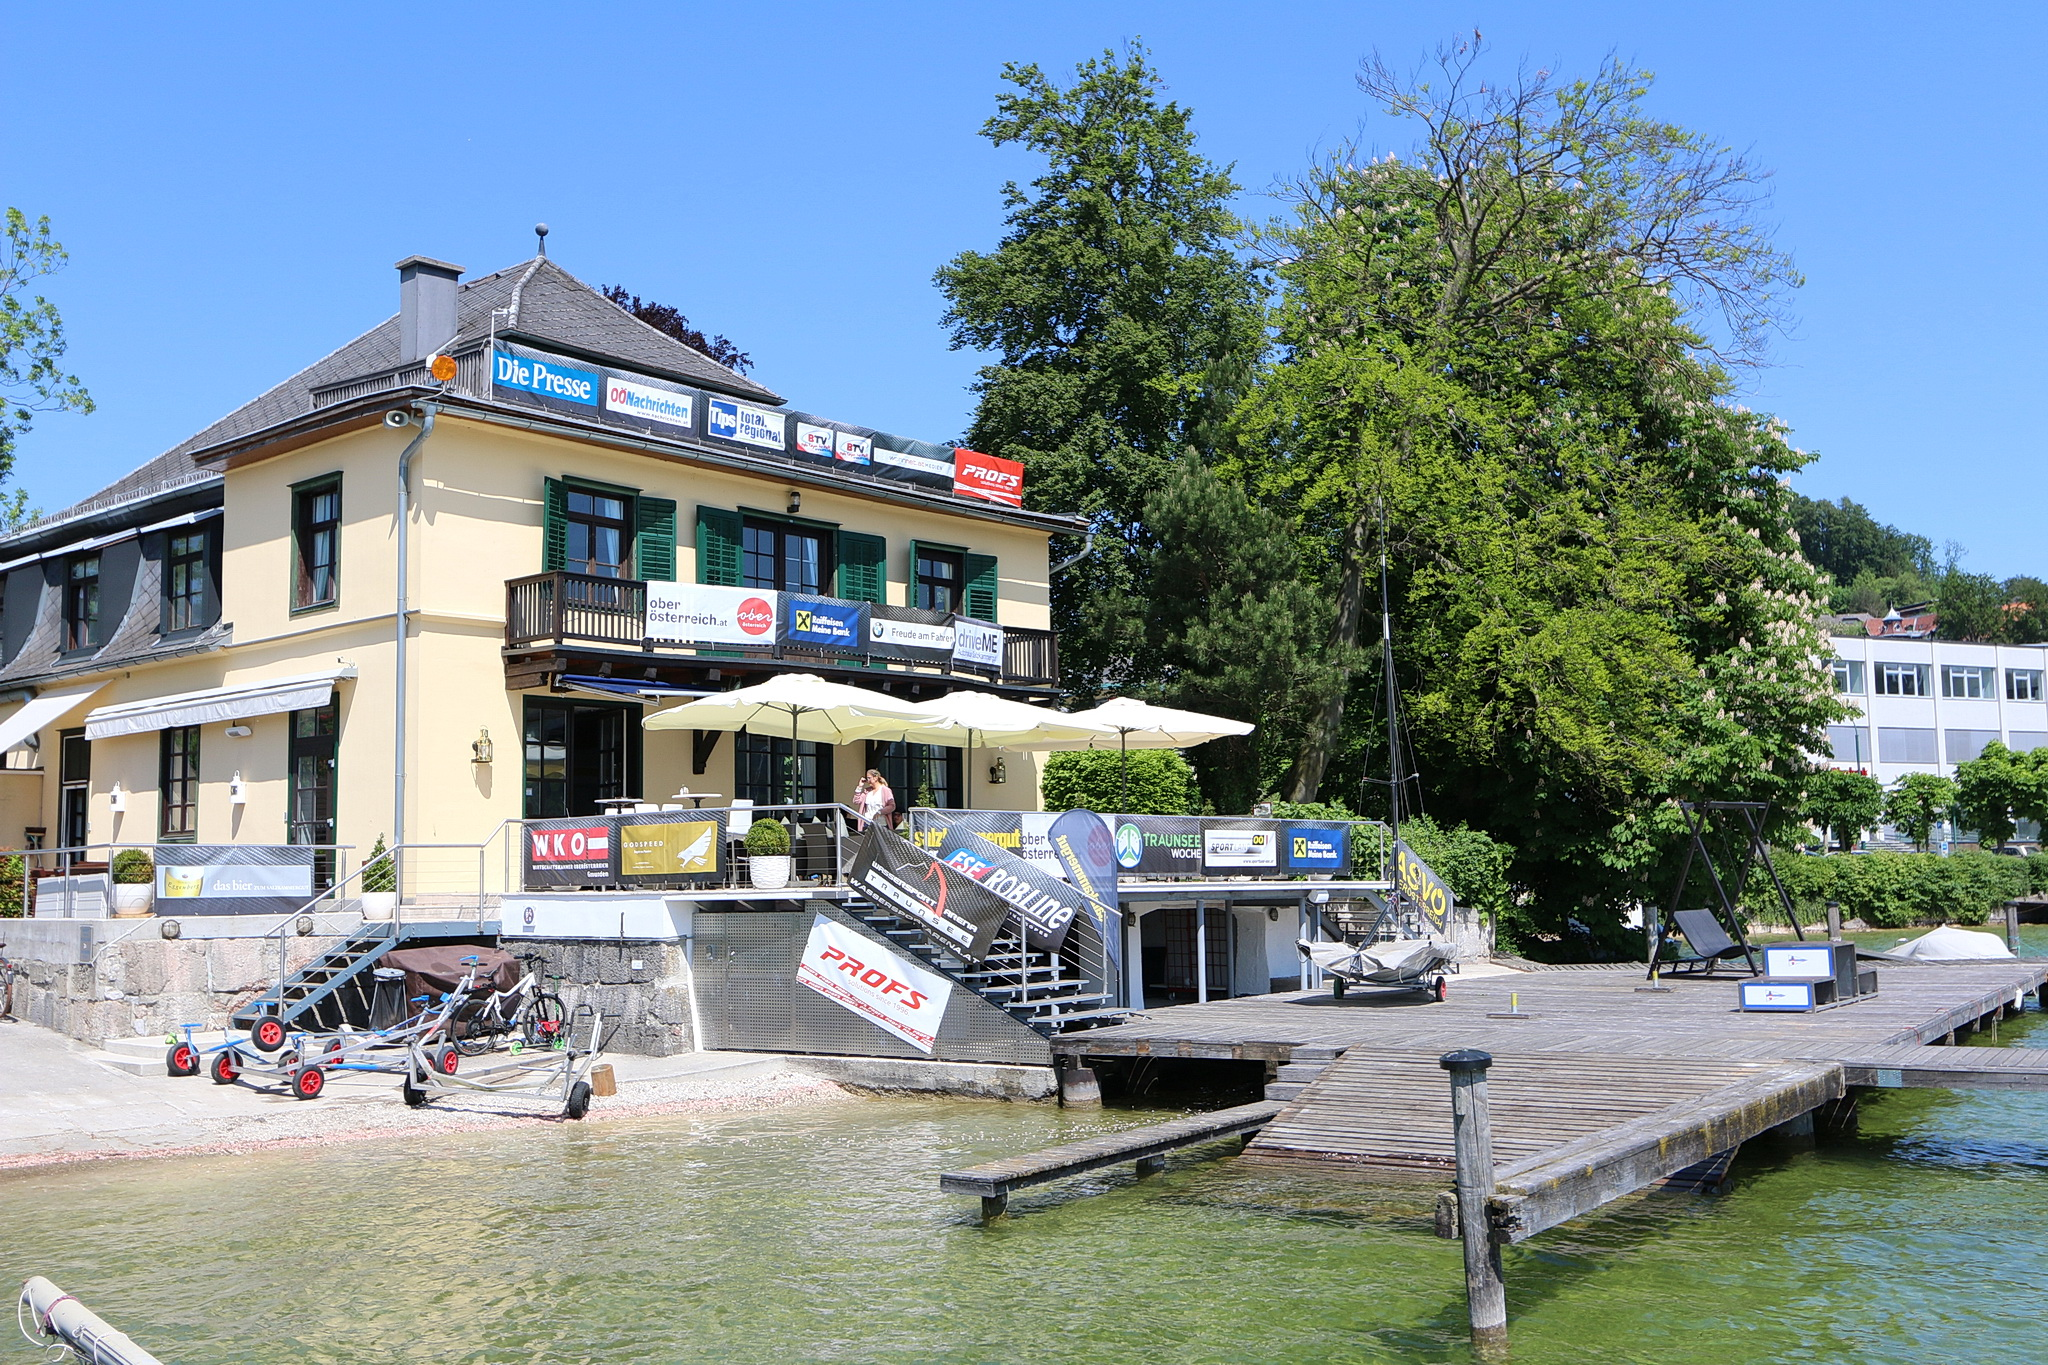 Union Yacht Club Traunsee